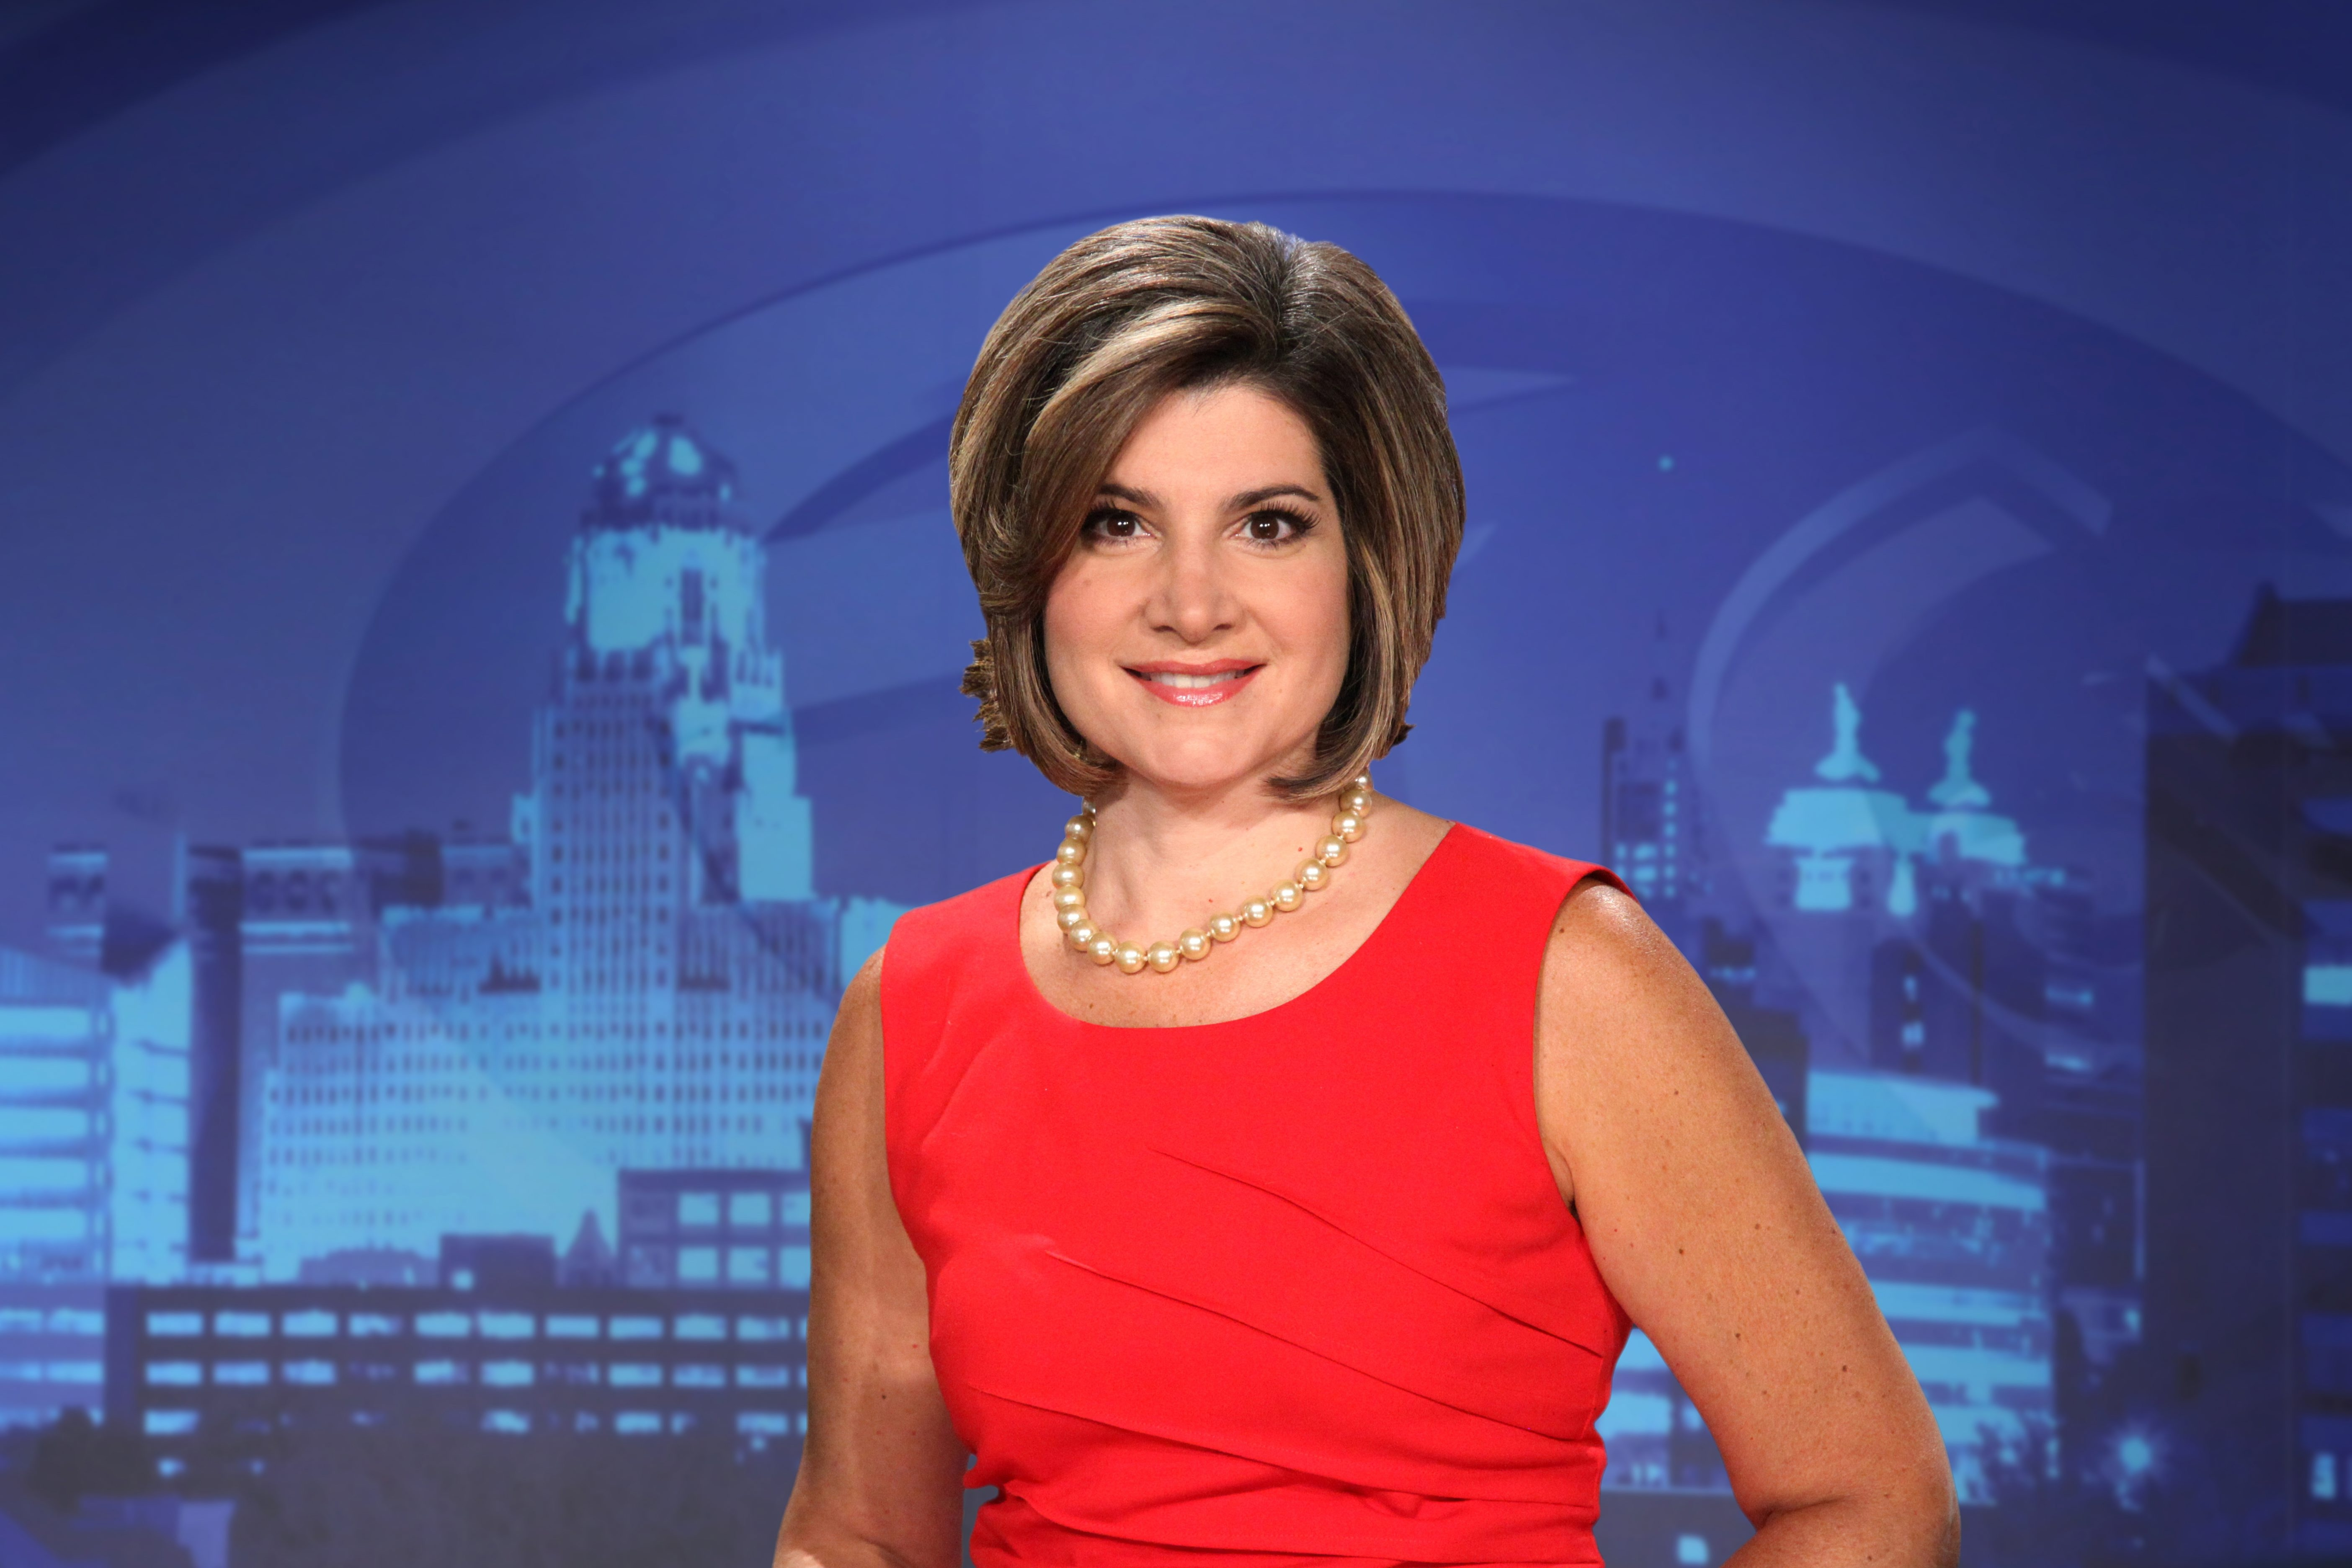 Joanna Pasceri teamed with Keith Radford to form the station's top anchor team.